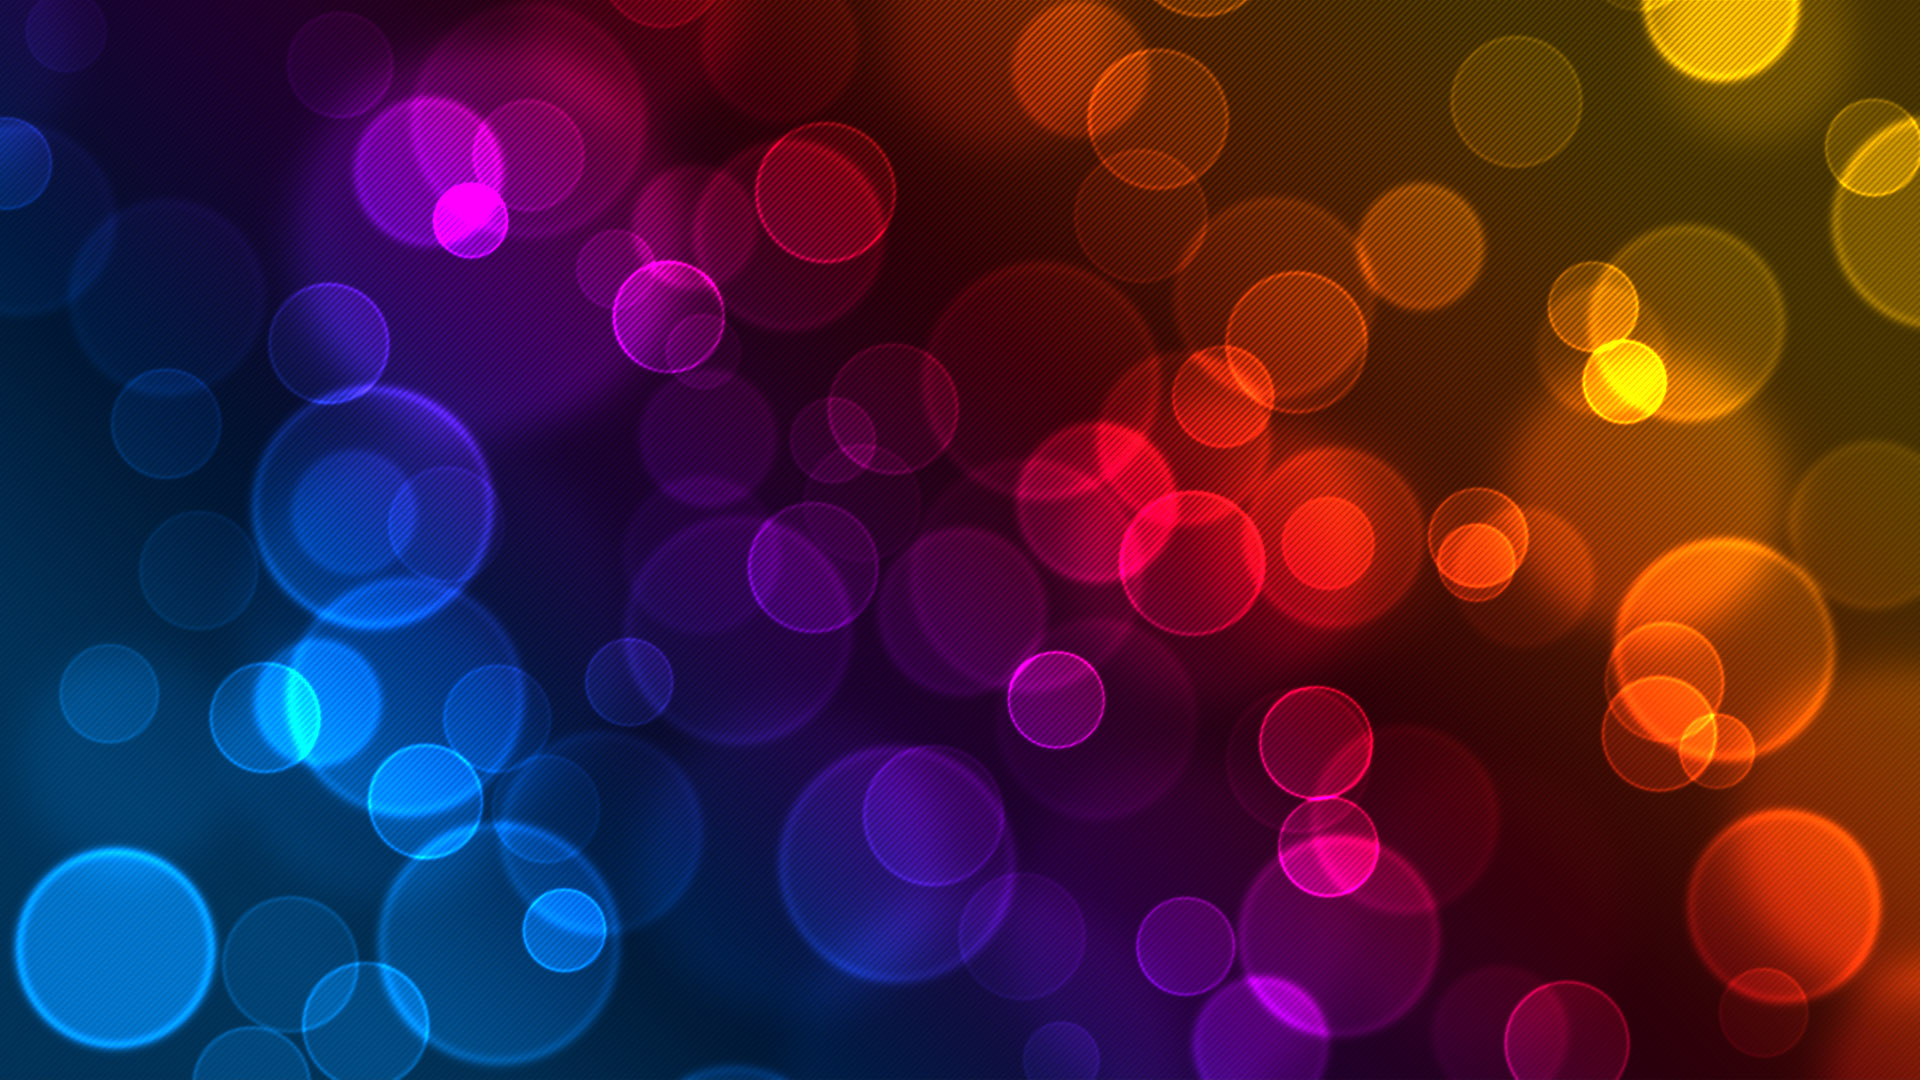 blurry lights background with colorful sparkling lights stock photo all the pretty lights pinterest lights background lights and vector art